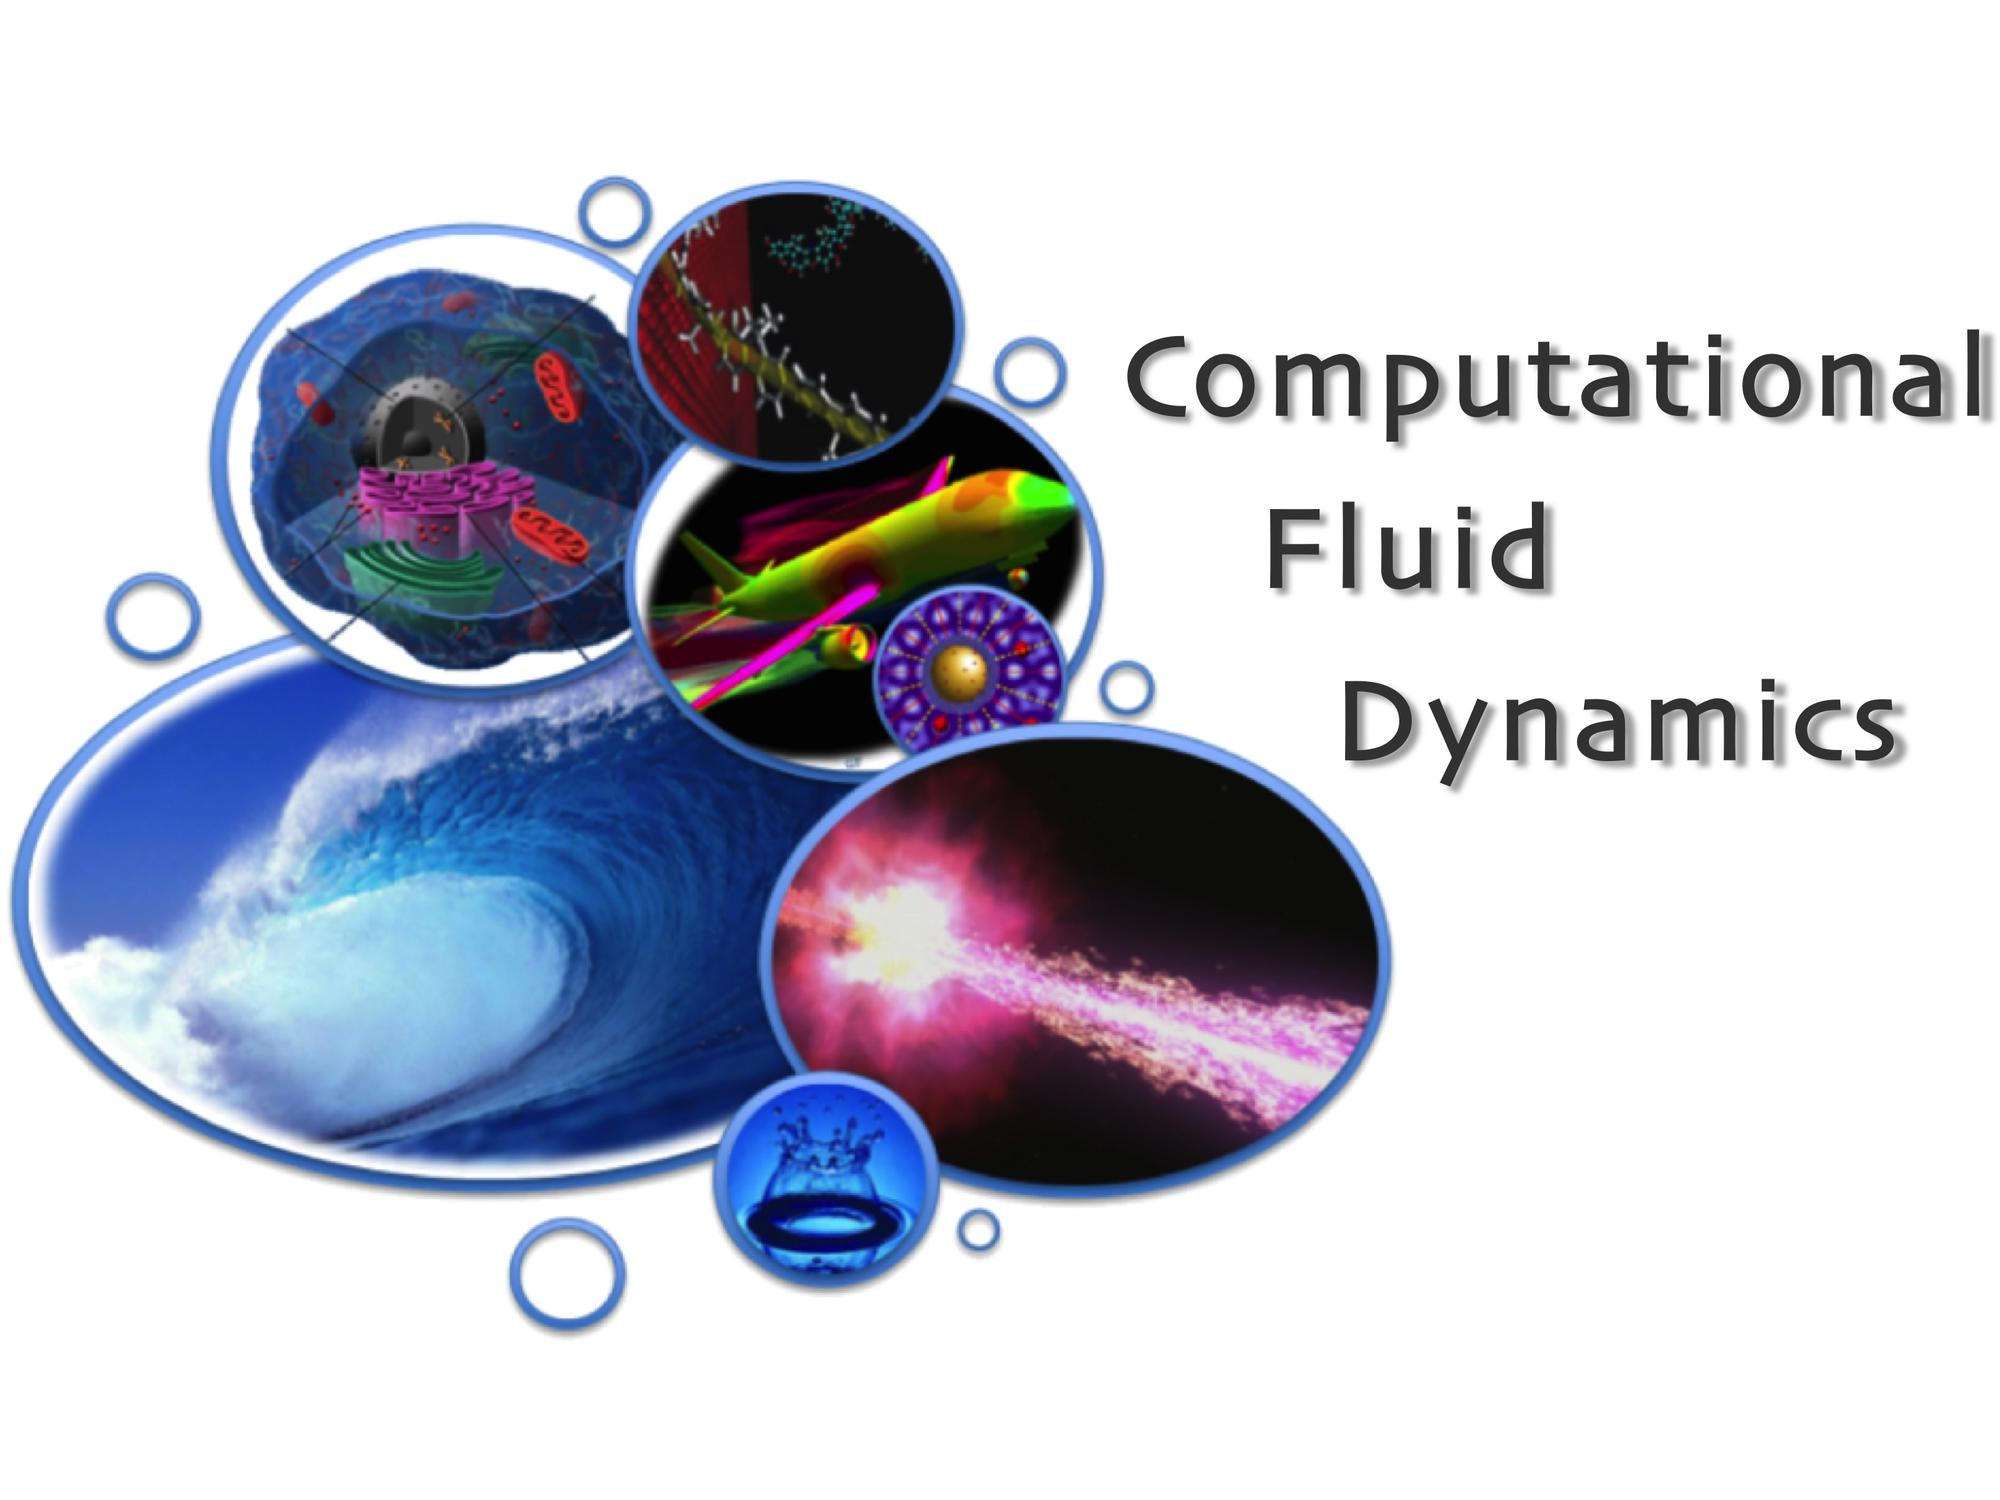 Computational Fluid Dynamics AC274 Logo - by Giacomo Falcucci